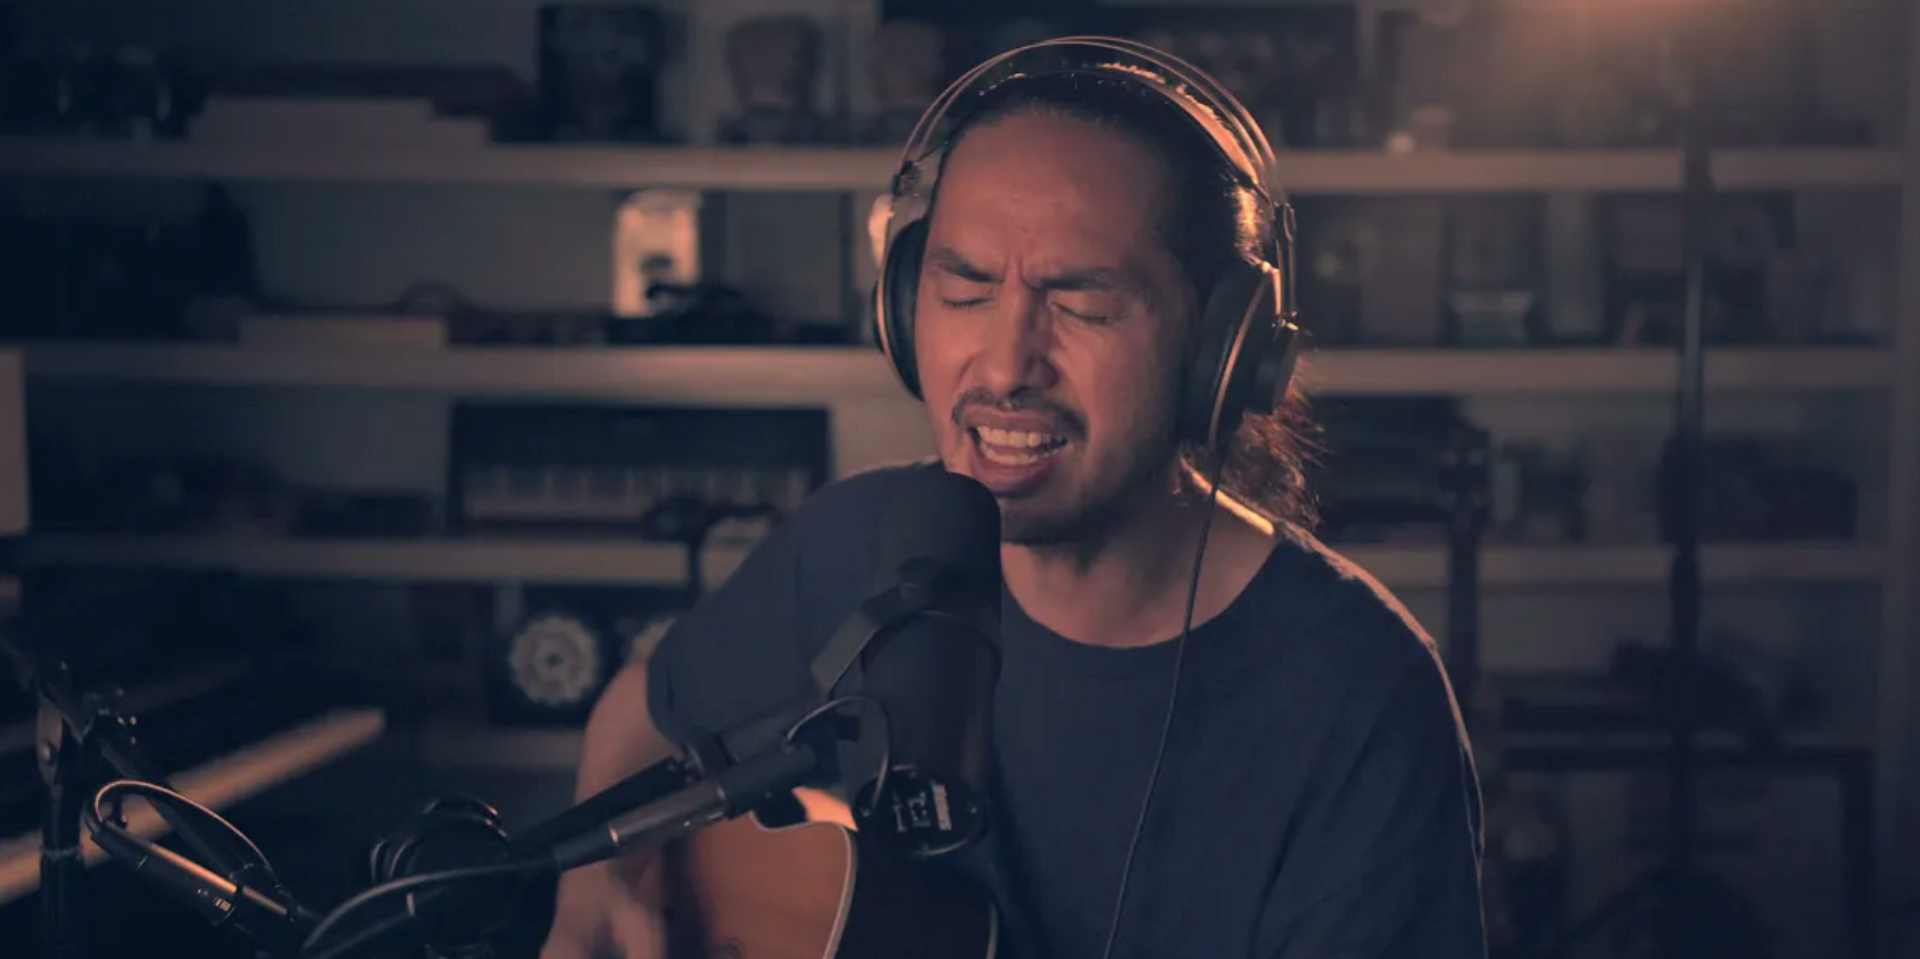 Rico Blanco honors Olympic Gold Medalist Hidilyn Diaz with new take on 'Alab ng Puso' – watch